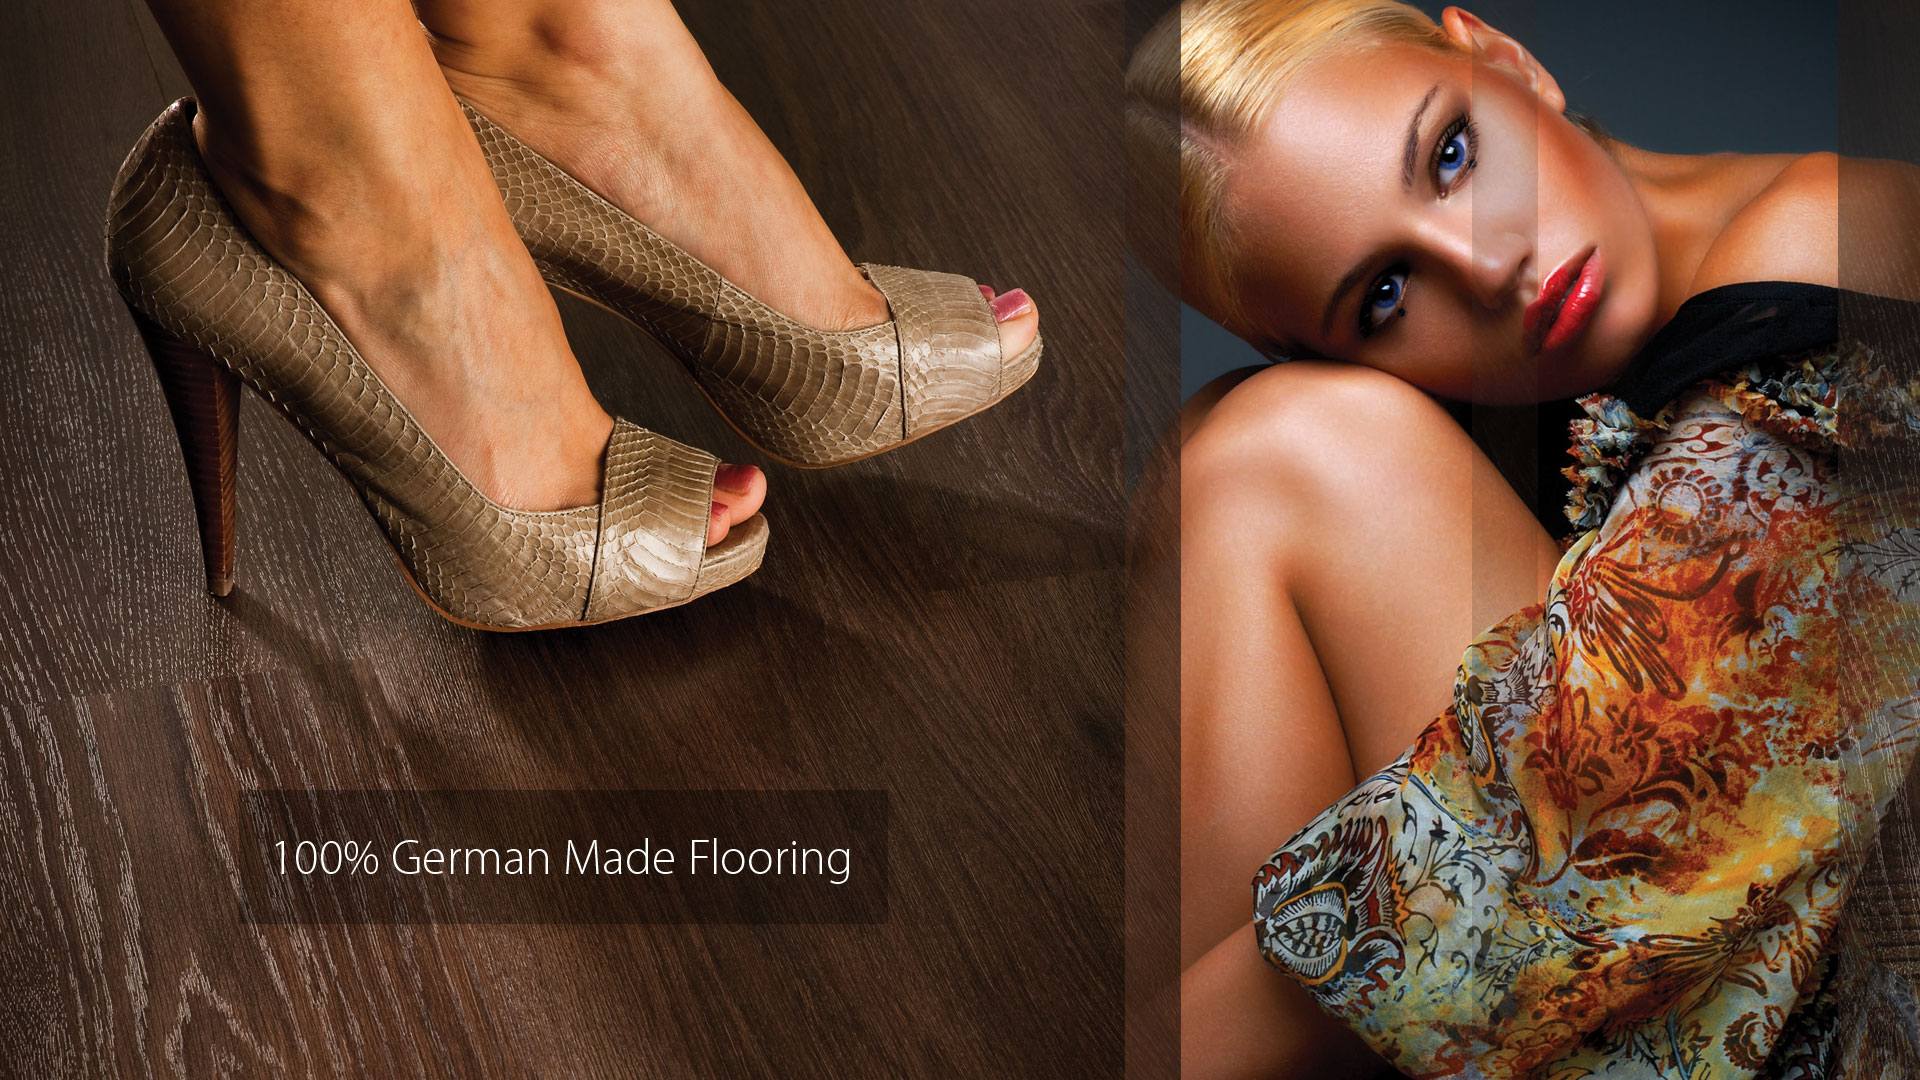 100% German Made European Flooring